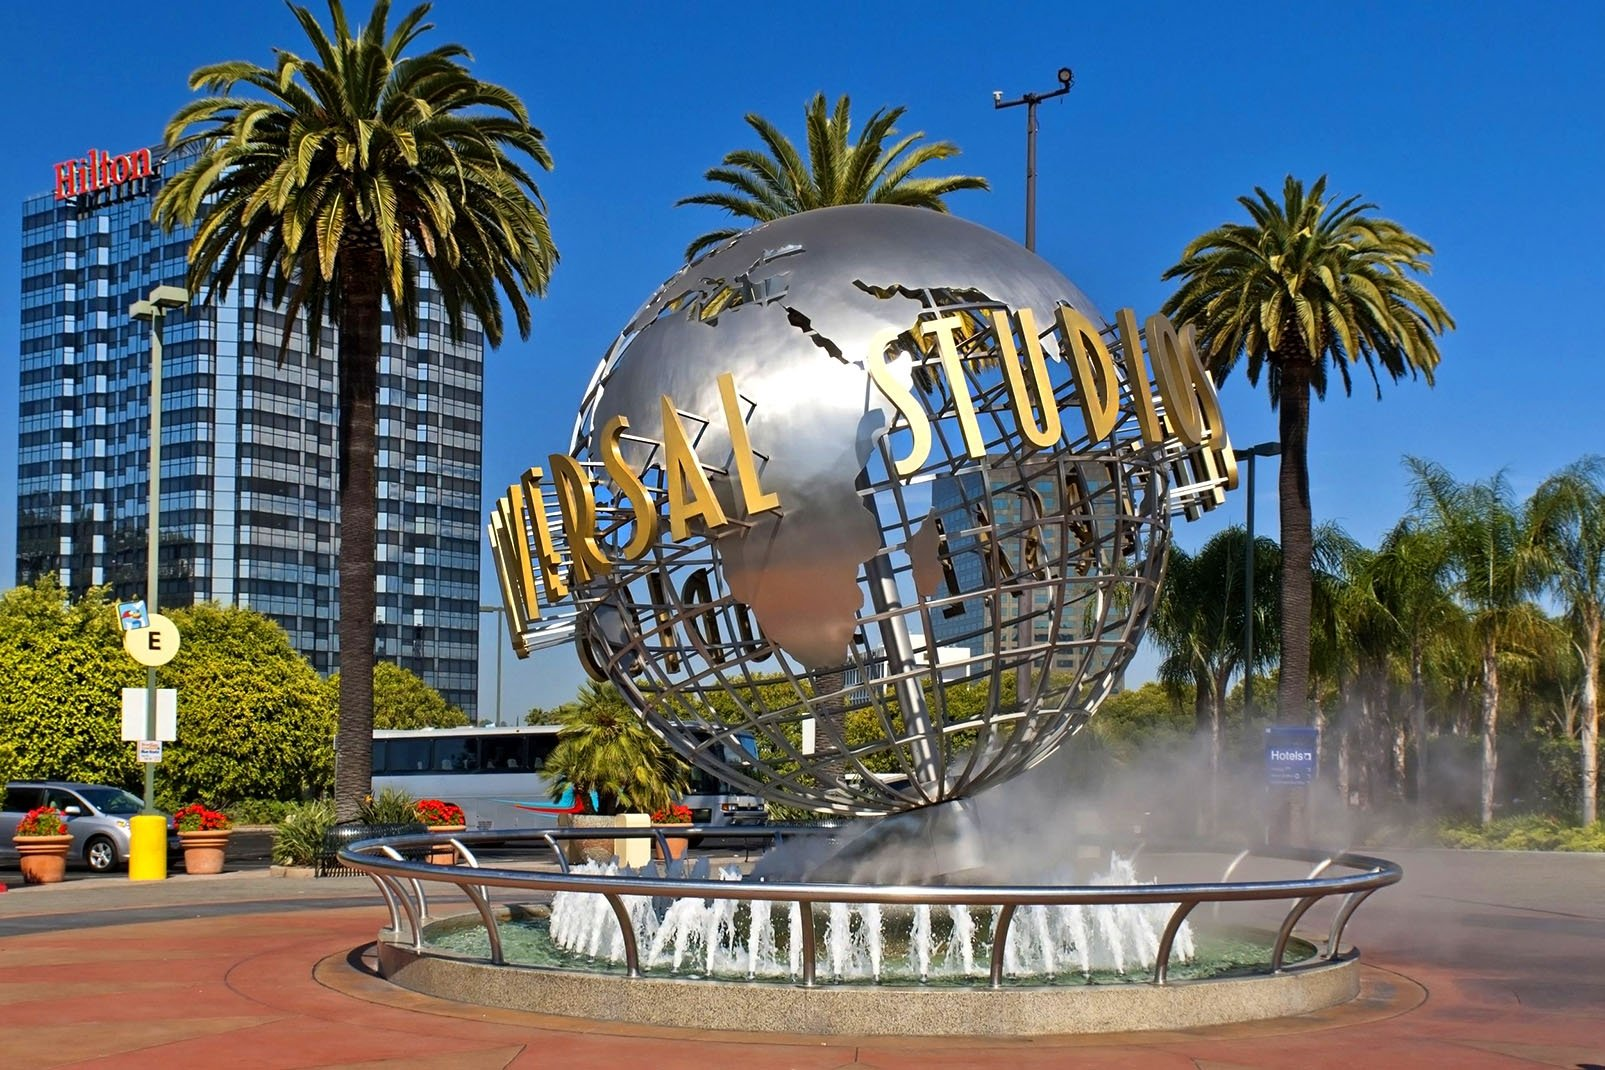 Etats-Unis, Amérique, Californie, Los Angeles, Universal Studios, Hollywood